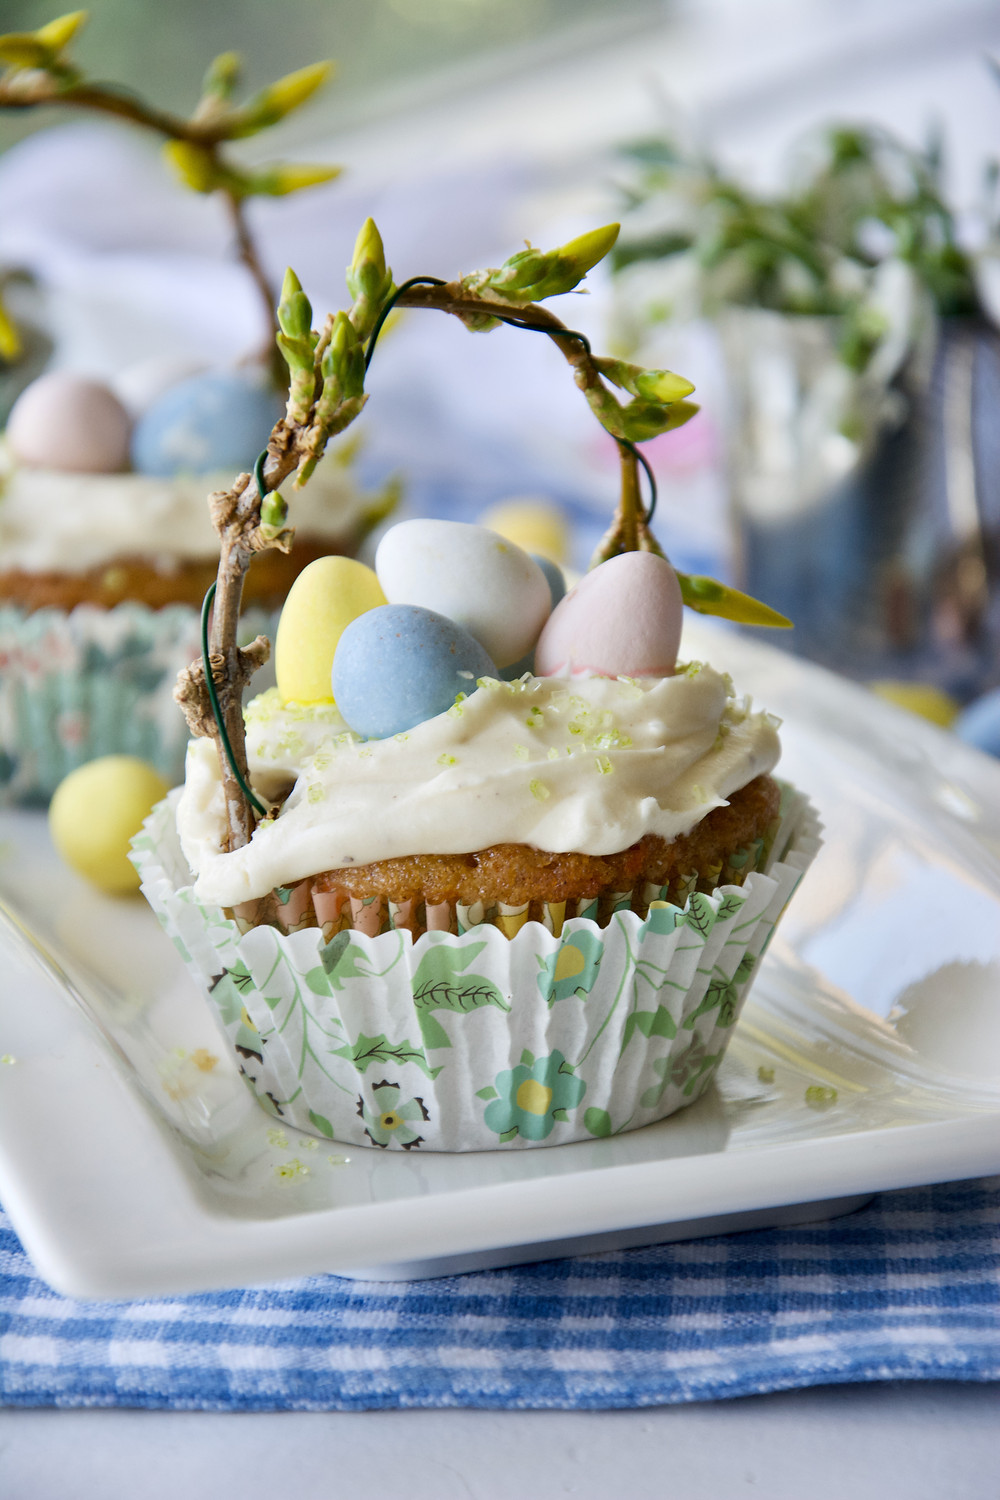 Carrot Cake Cupcake Basket with chocolate eggs and a floral handle.